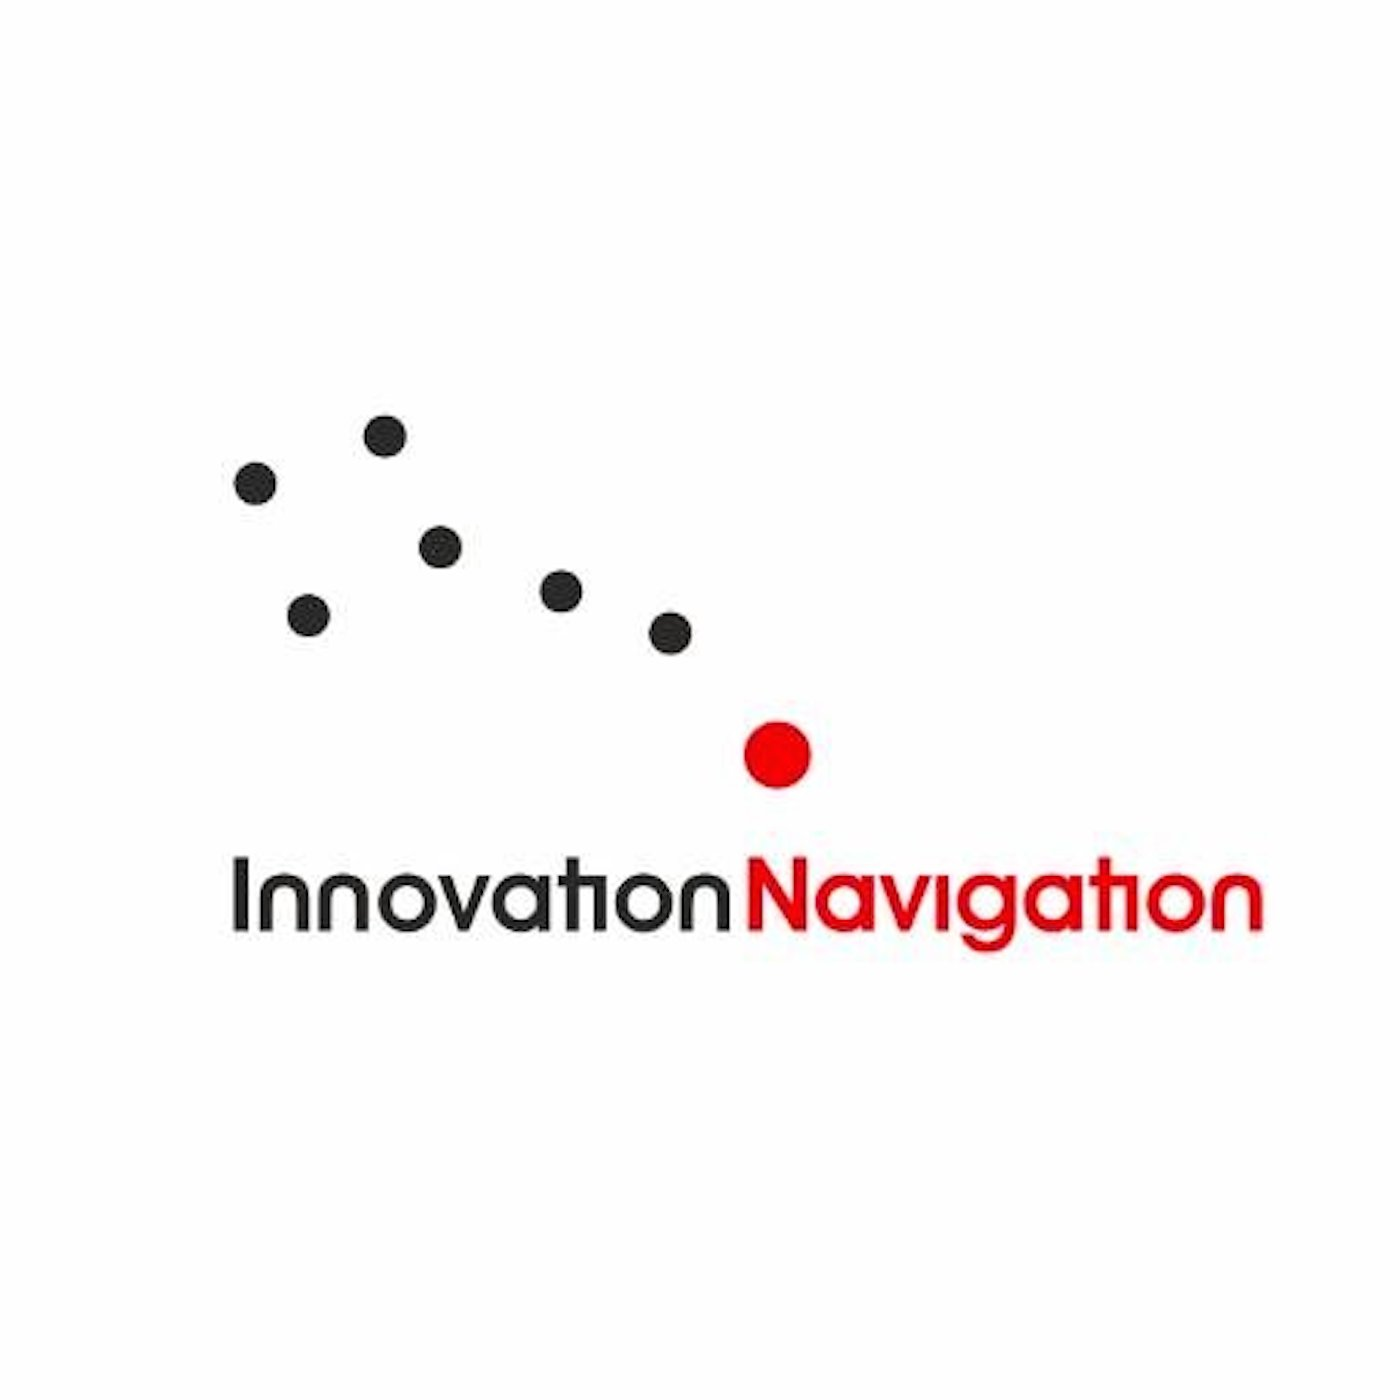 Innovation Navigation 10/21/14 - Ed Hess, George Westerman, Sarah Robb O'Hagan, Stephen Shapiro